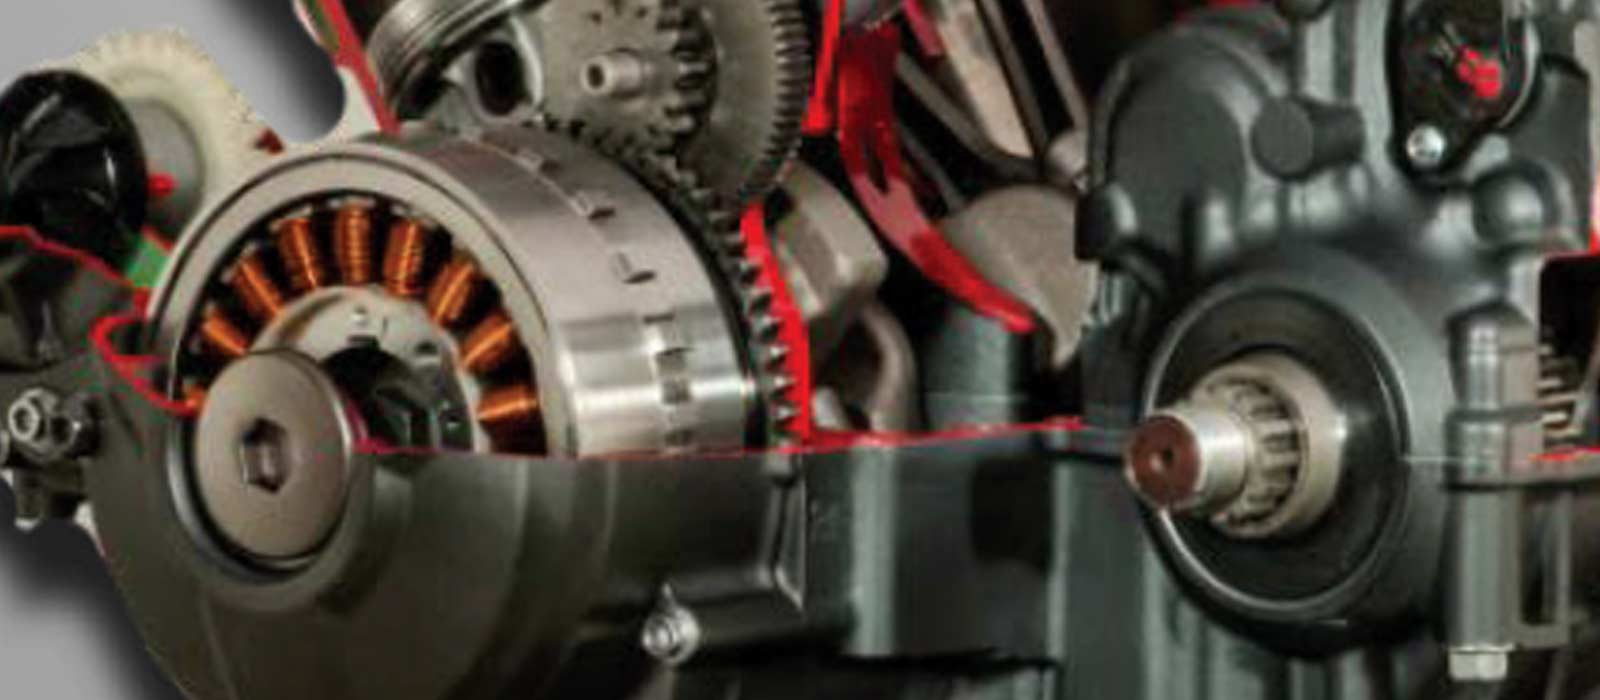 Motorcycle Alternator vs. Stator: What's the Difference?